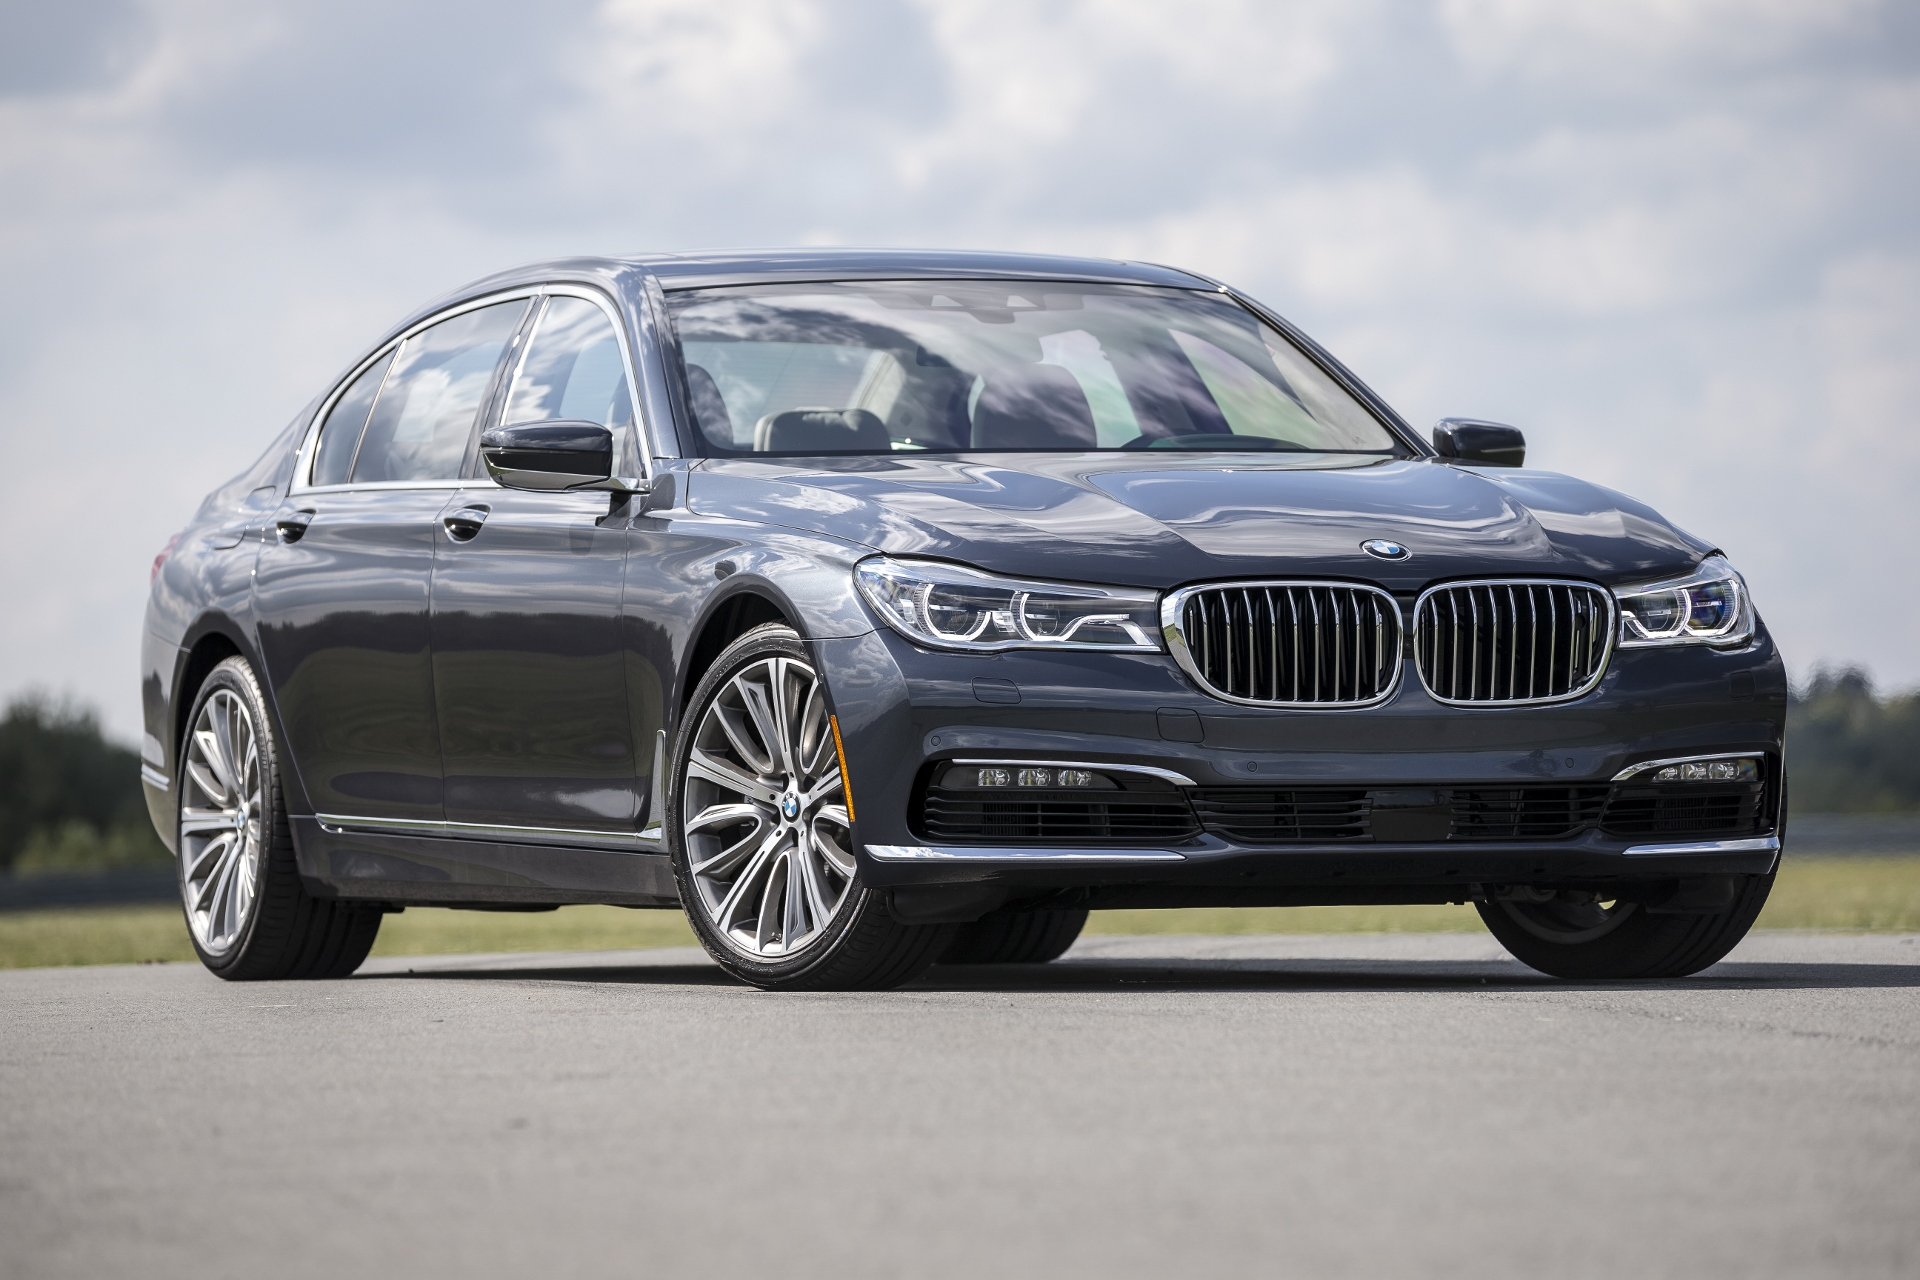 2016 BMW 7-Series first drive review